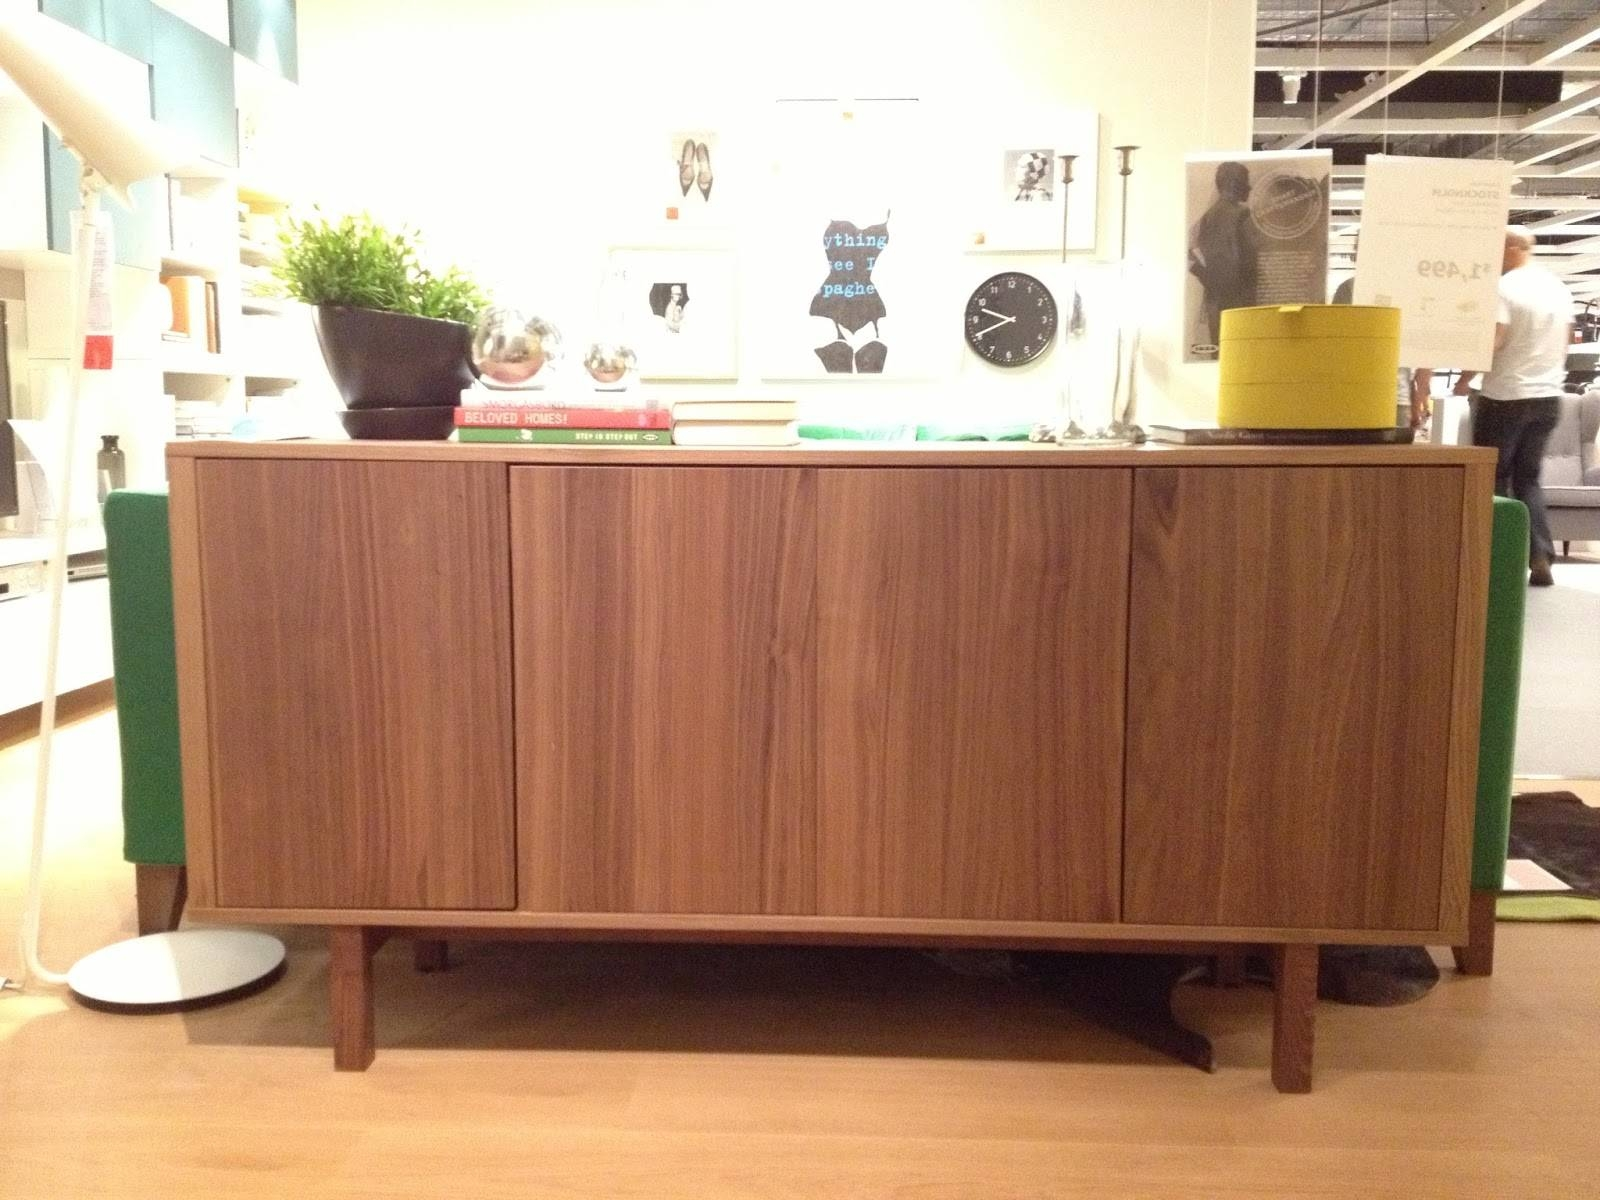 Awesome Ikea Stockholm Sideboard – Bjdgjy With Regard To 2018 Stockholm Sideboards (#2 of 15)